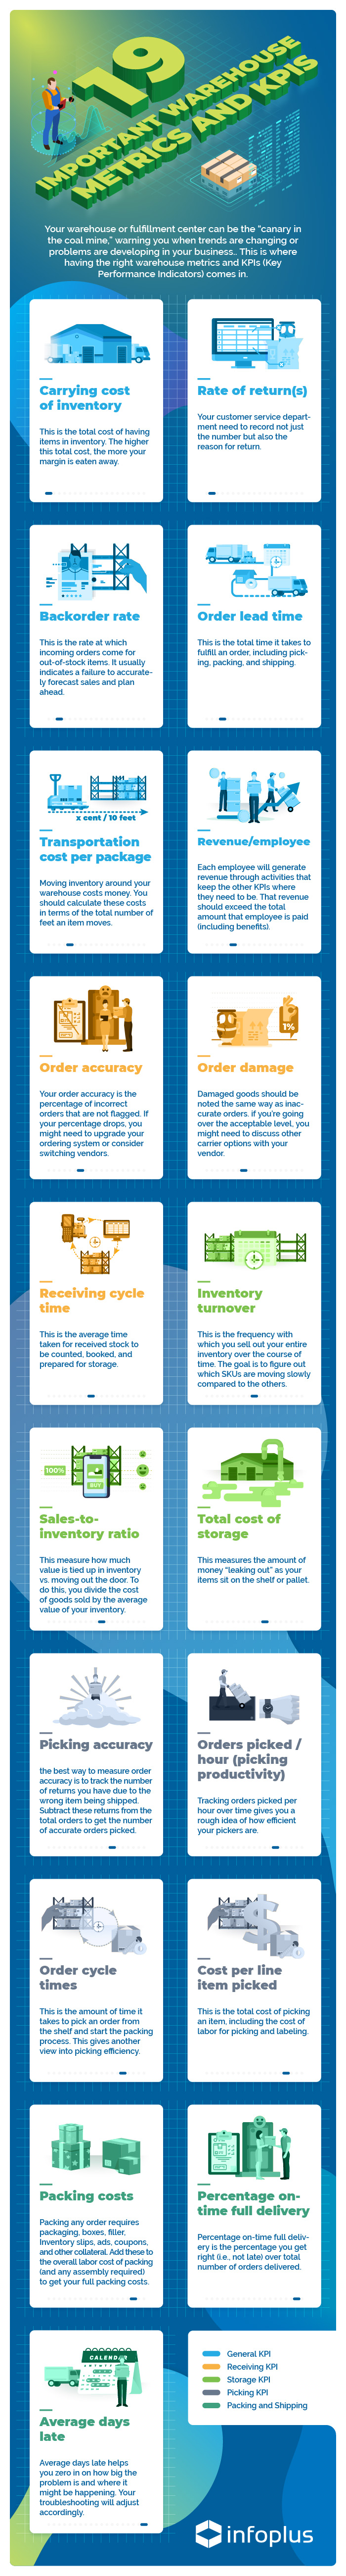 19-Important-Warehouse-Metrics-And-KPIs_infopluscommerce_infographic